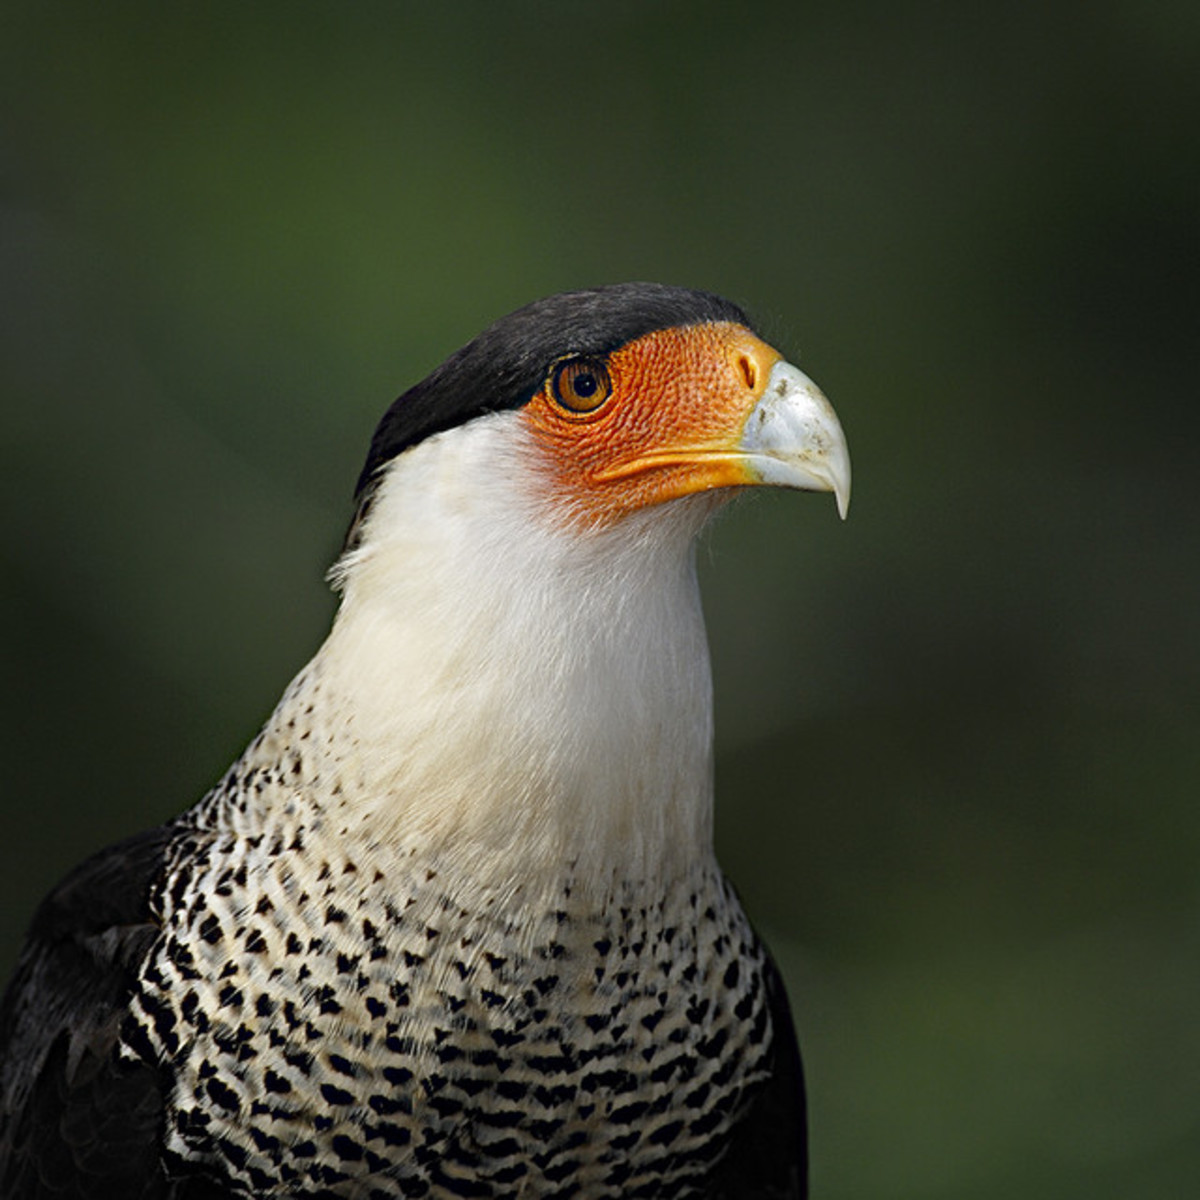 The crested caracara can be found in North America in Mexico and only on the southern parts of the United States, including Florida, where it is considered a threatened species.